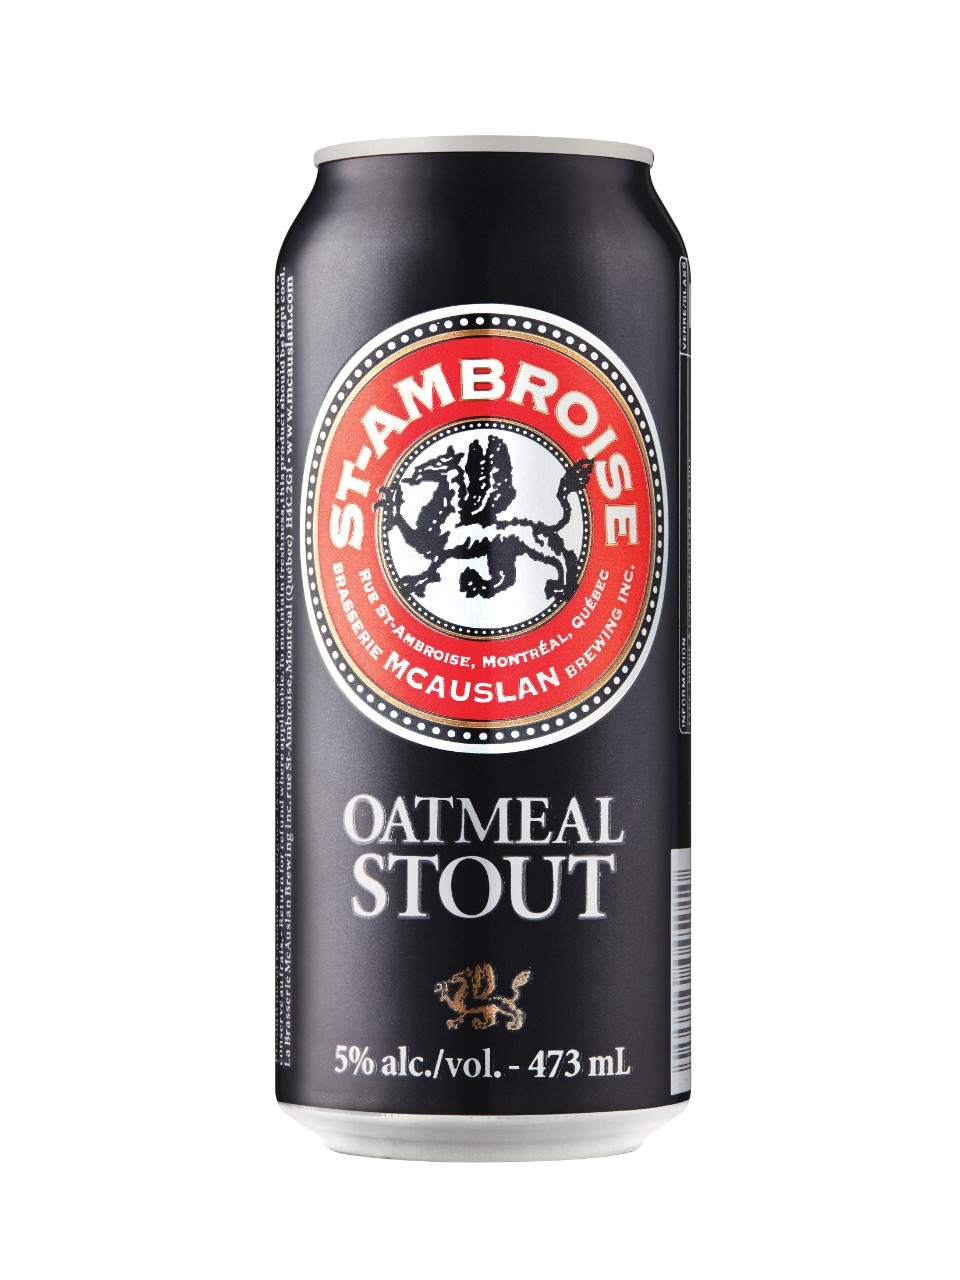 St-Ambroise Oatmeal Stout from LCBO